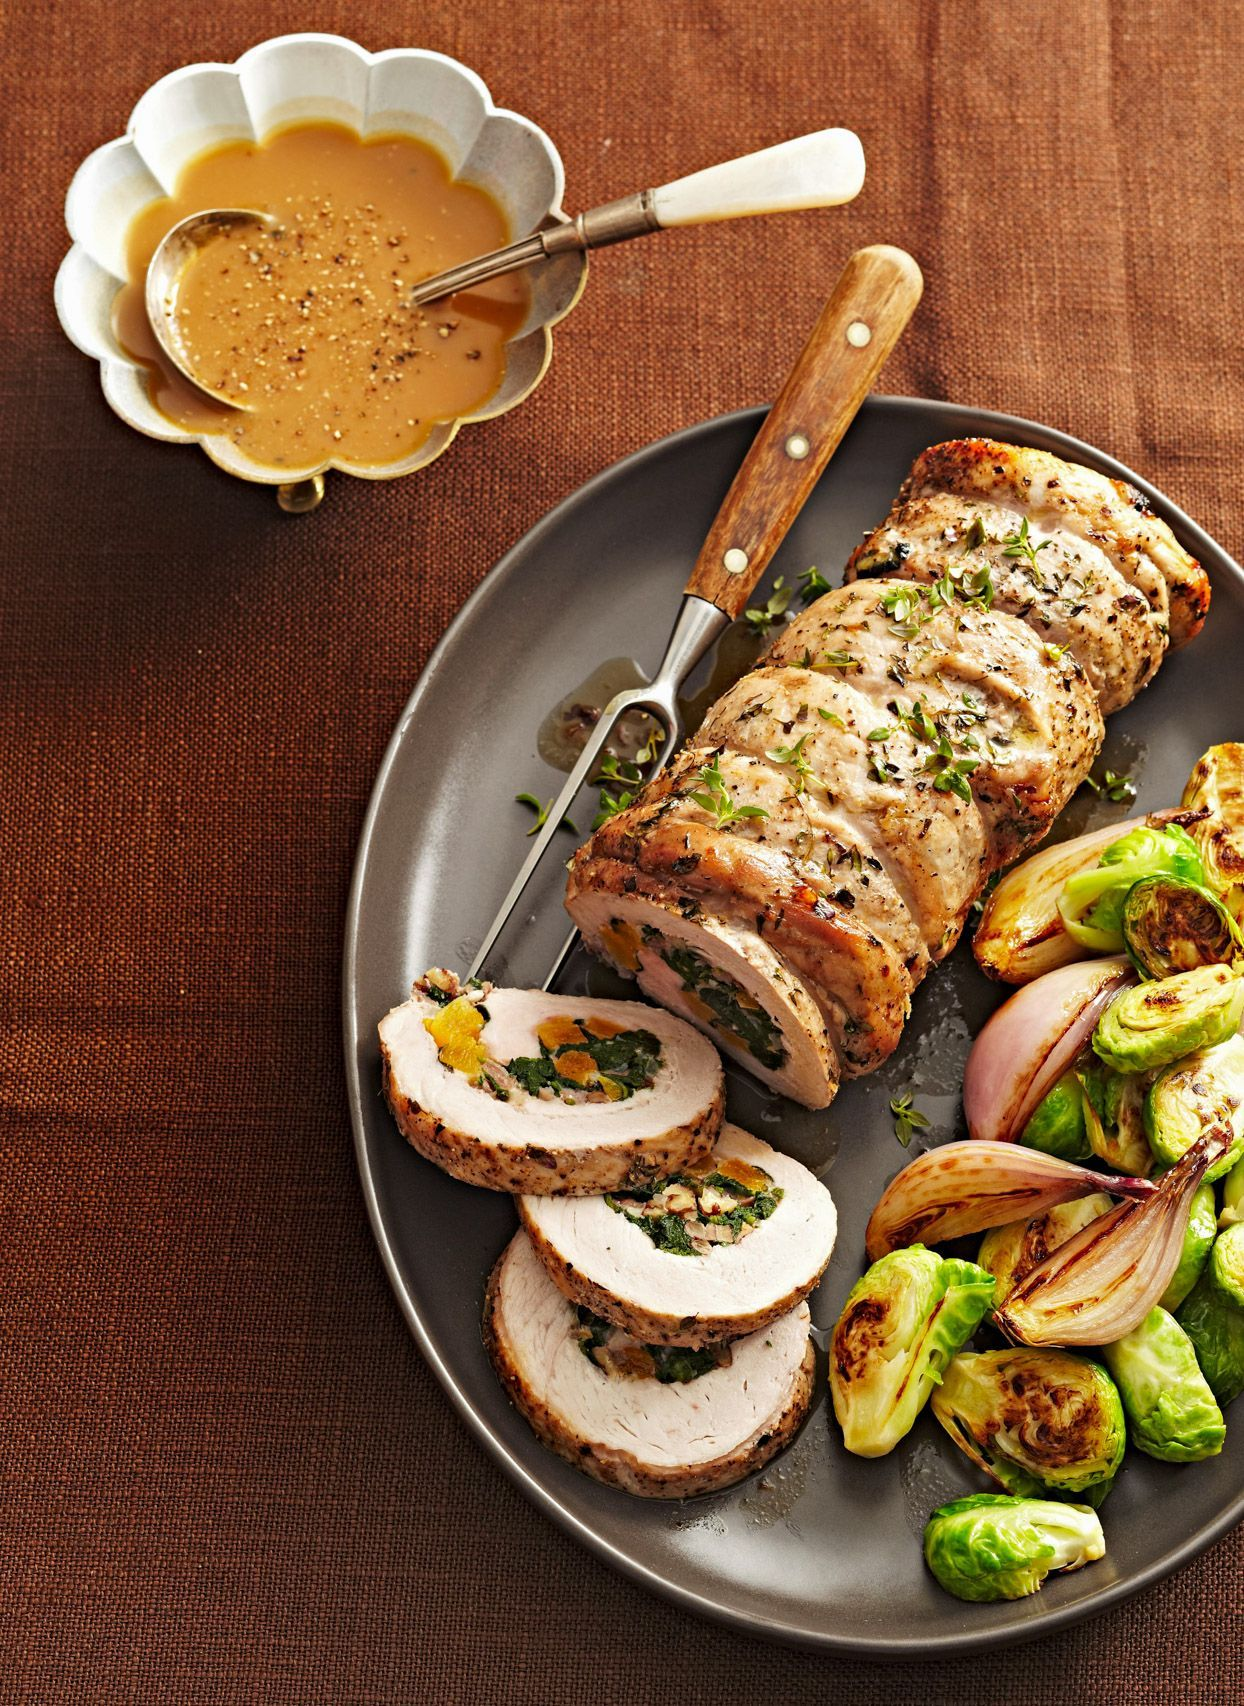 These 16 Christmas Dinner Menu Ideas Are The Ultimate Gift To Share This Holiday Season In 2020 Christmas Dinner Menu Easy Christmas Dinner Traditional Christmas Dinner Menu